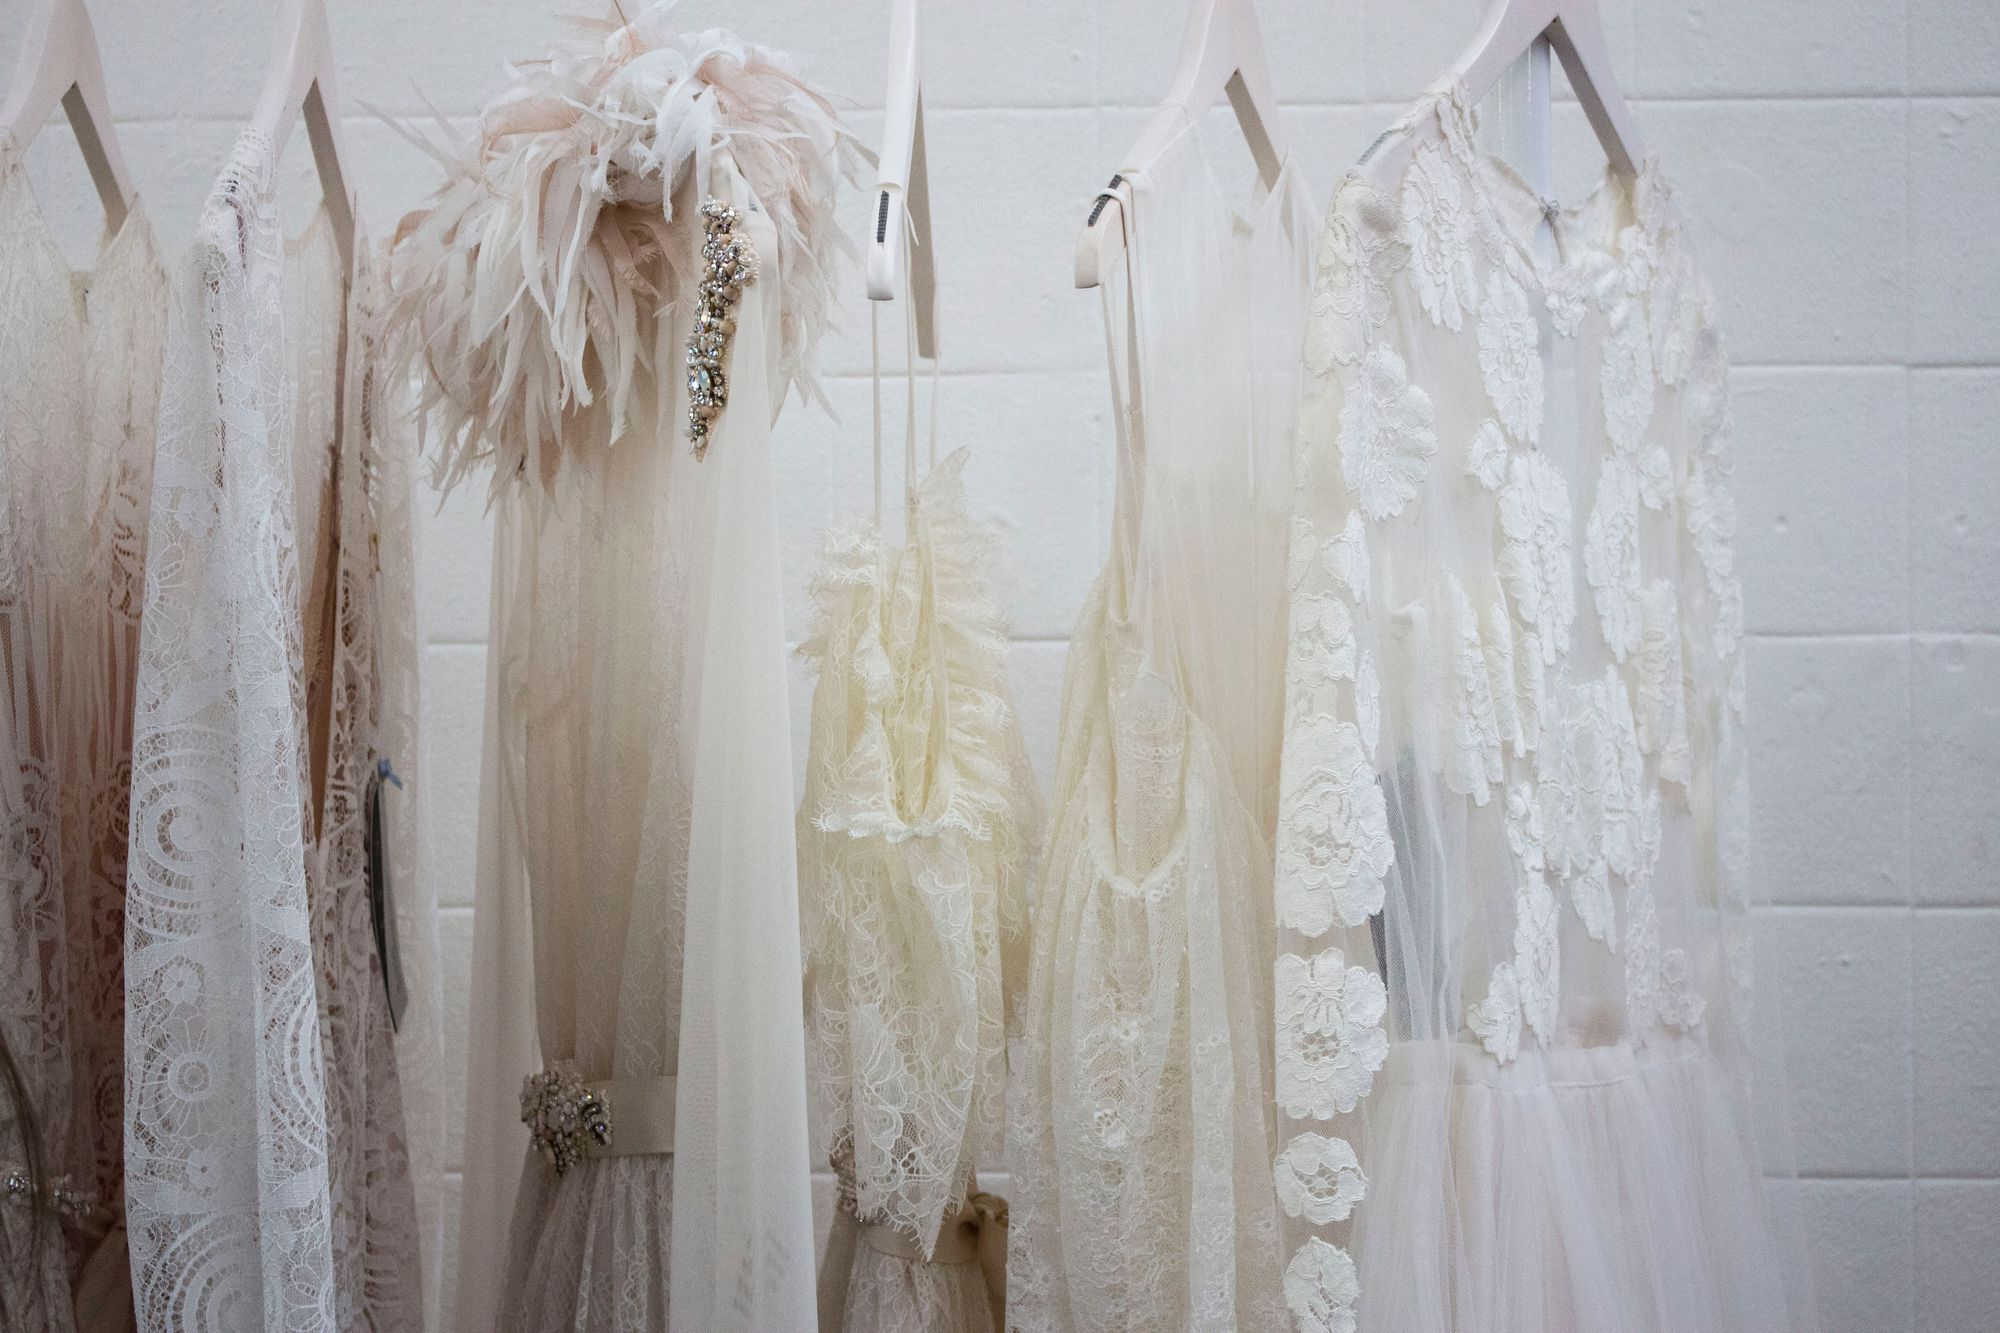 White Dresses That Could Be Wedding Dresses